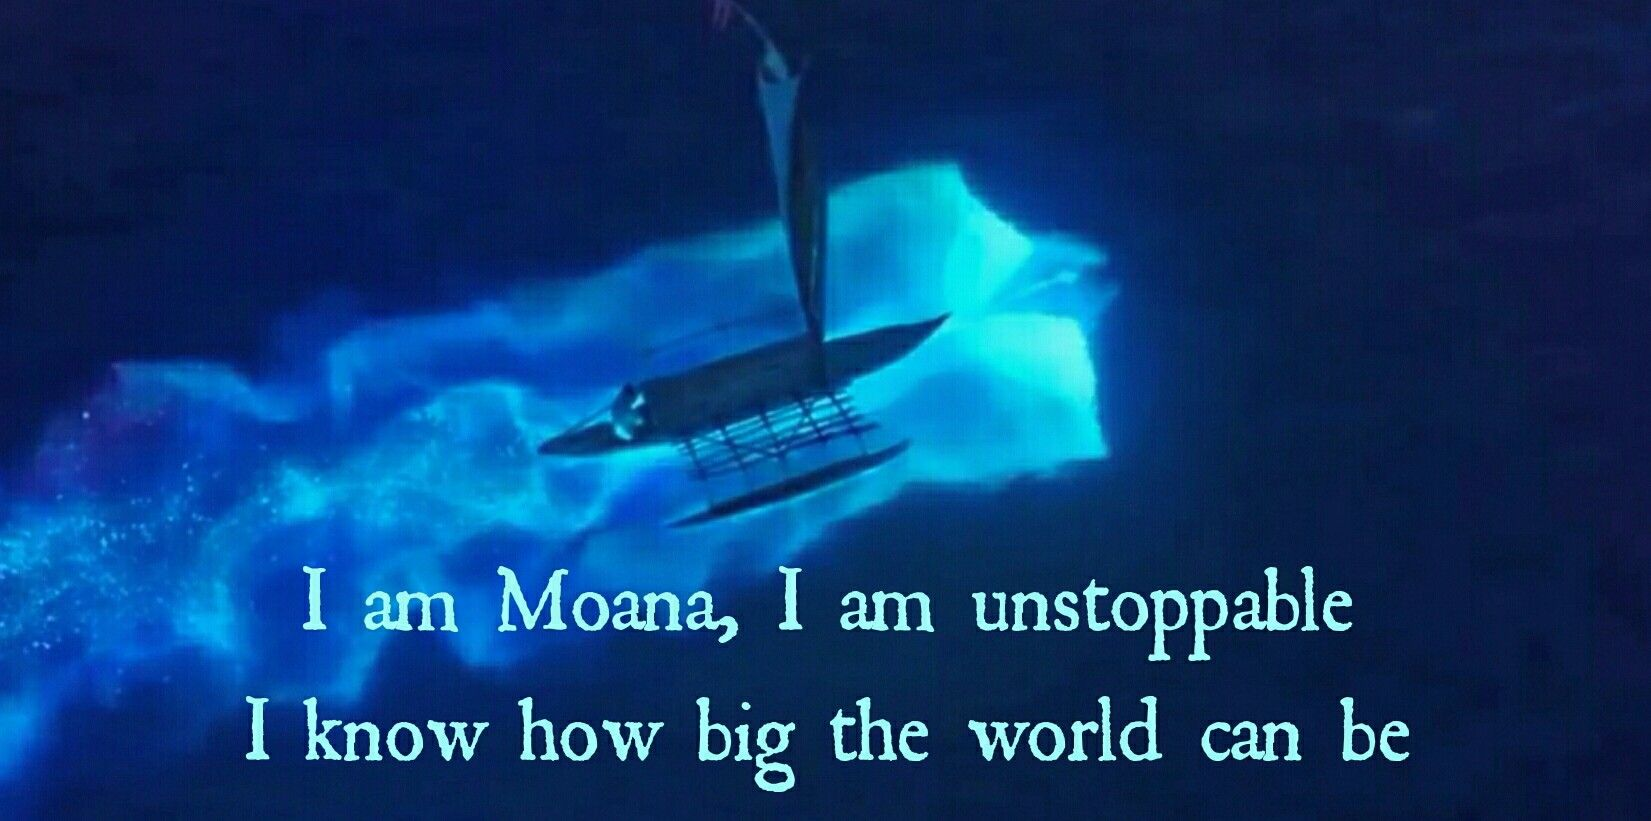 I am moana... ❤ #moana #disney #how far I'll go reprise #grandma #tala #unstoppable #lin-manuel miranda #spirit